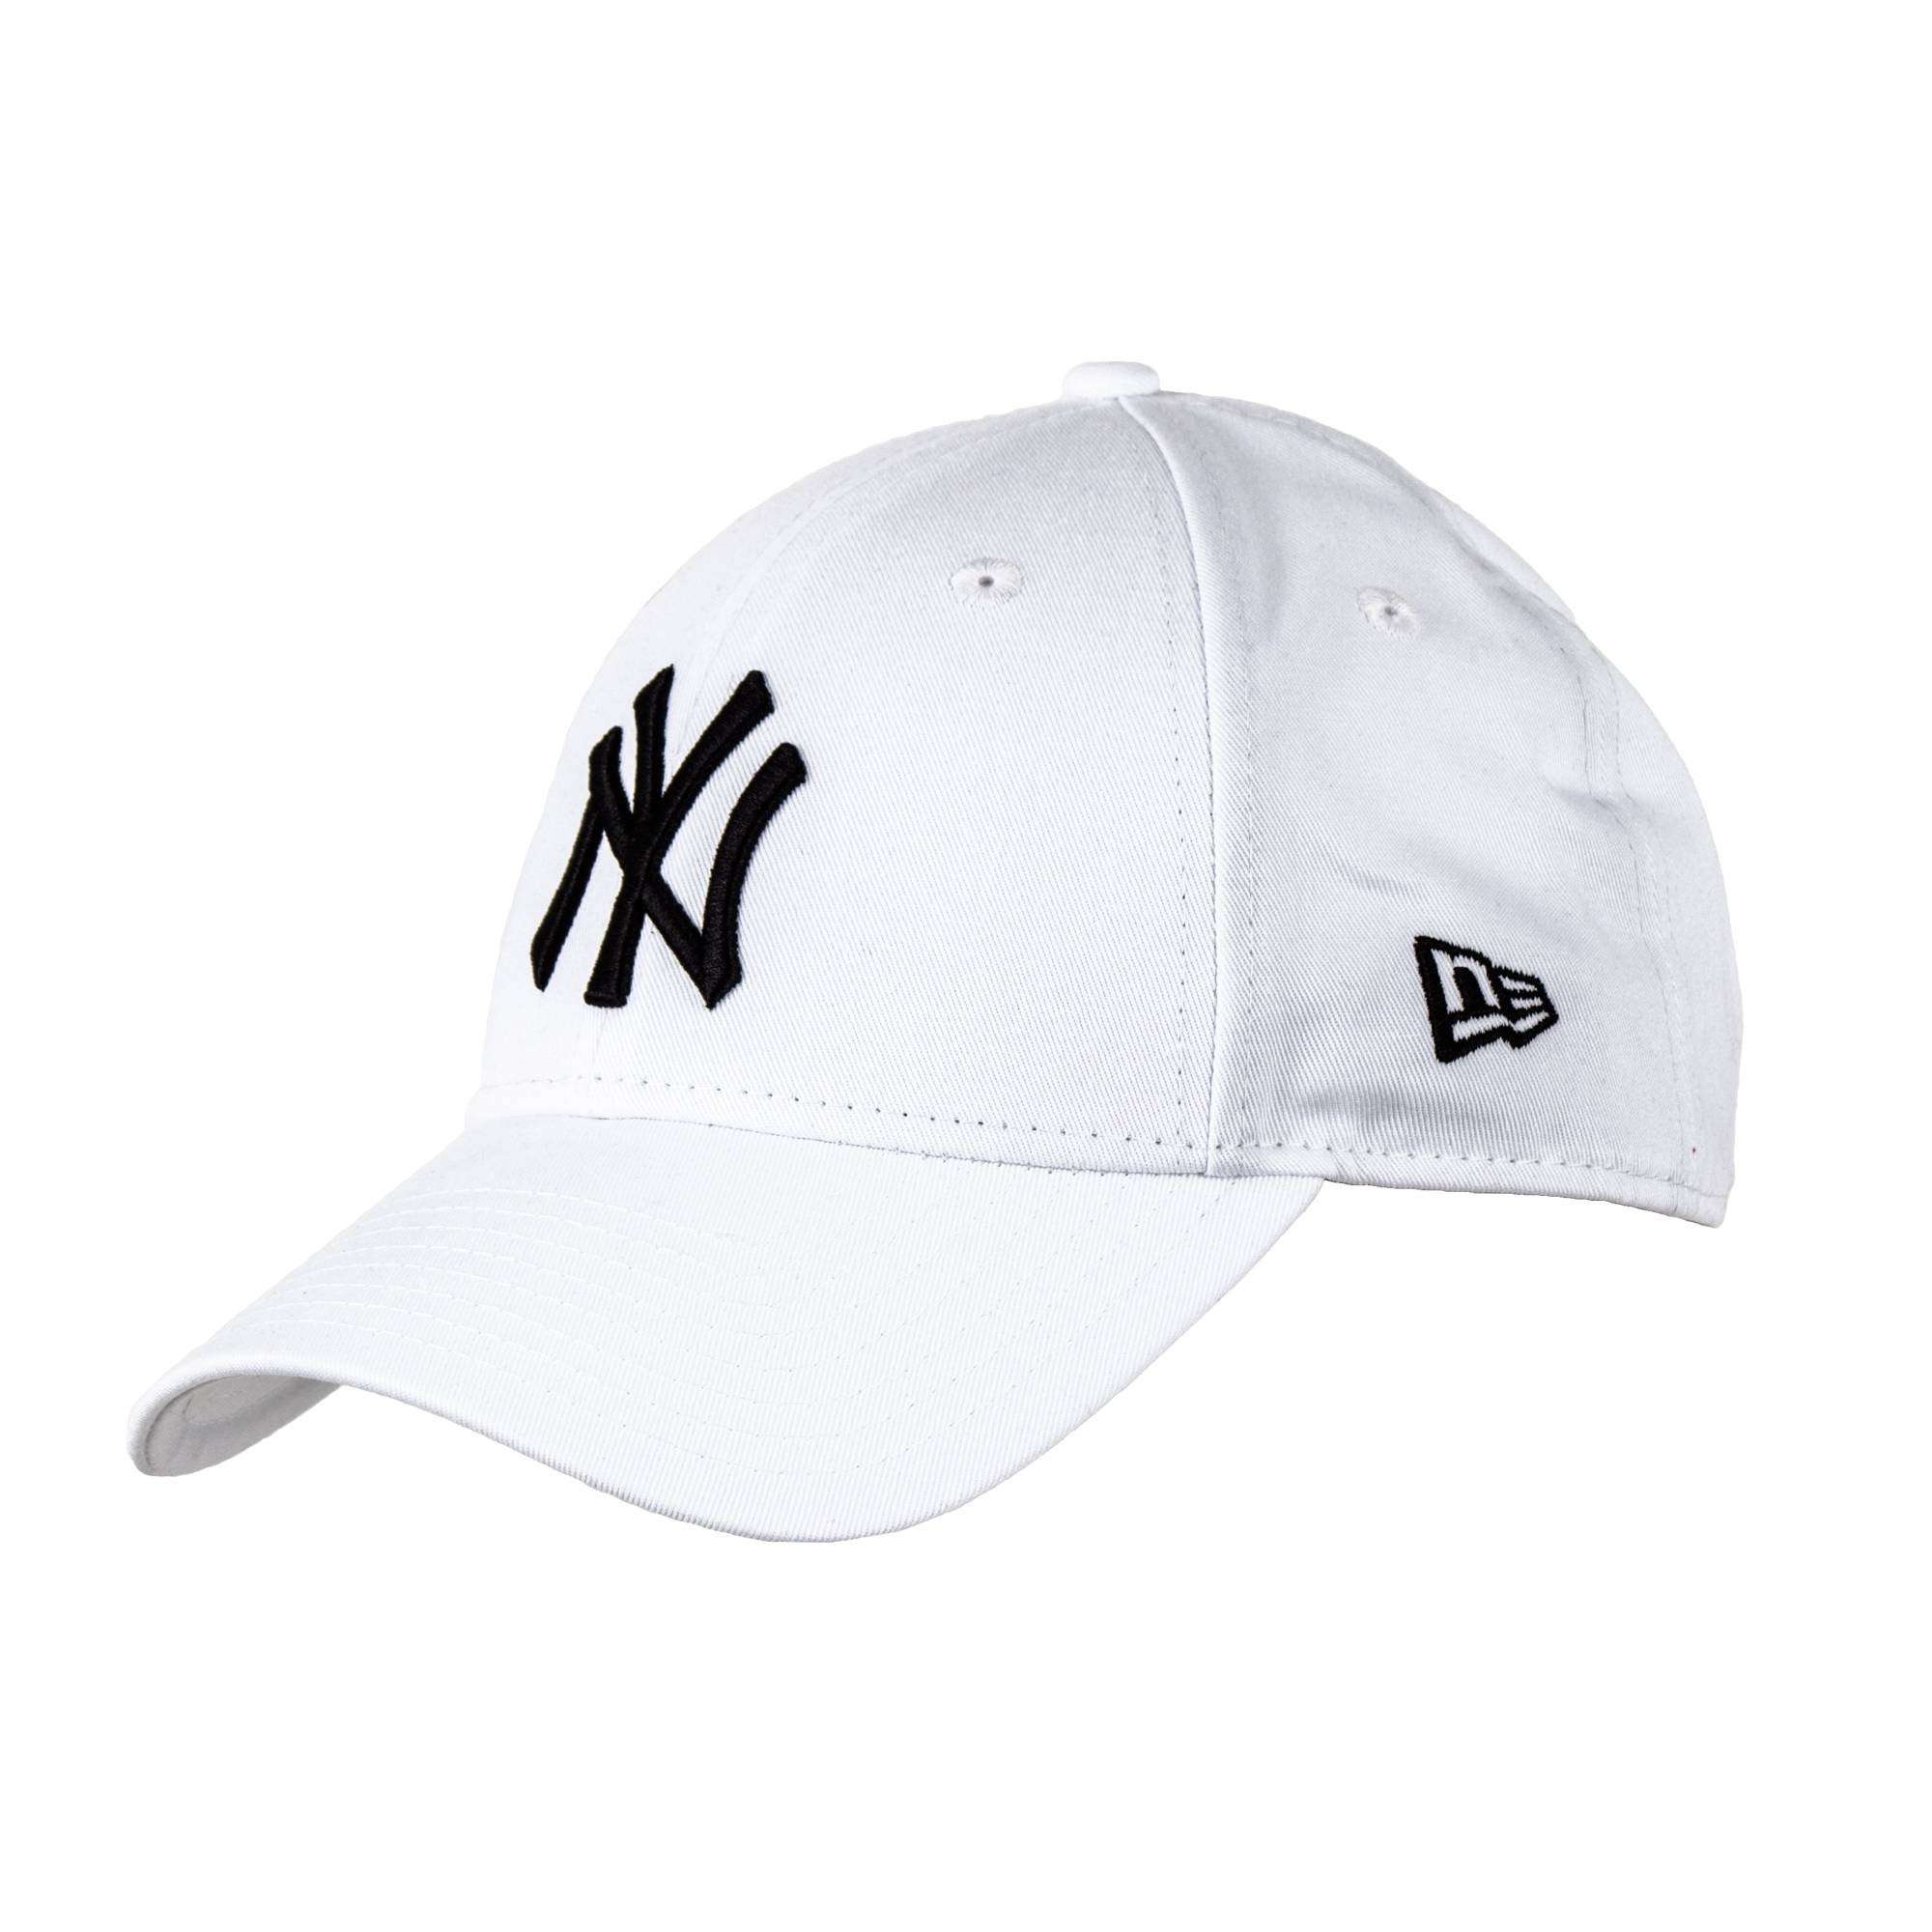 8c34175e343bf NEW ERA - Adjustable Peaked Cap NY Yankees 9 Forty. White. Loading zoom